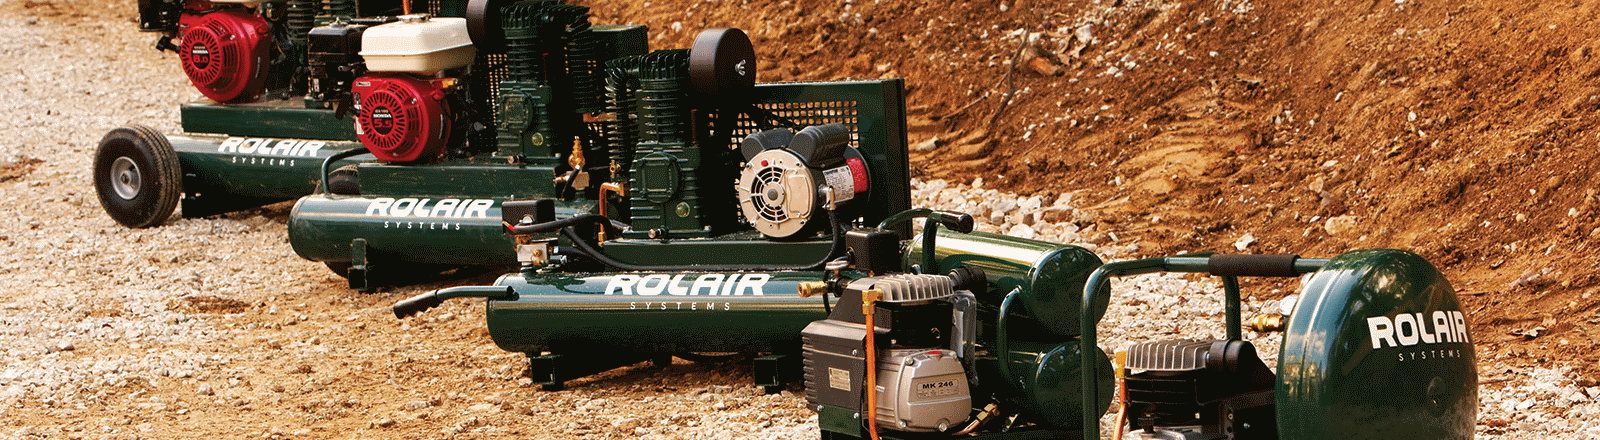 RolAir Compressors Banner